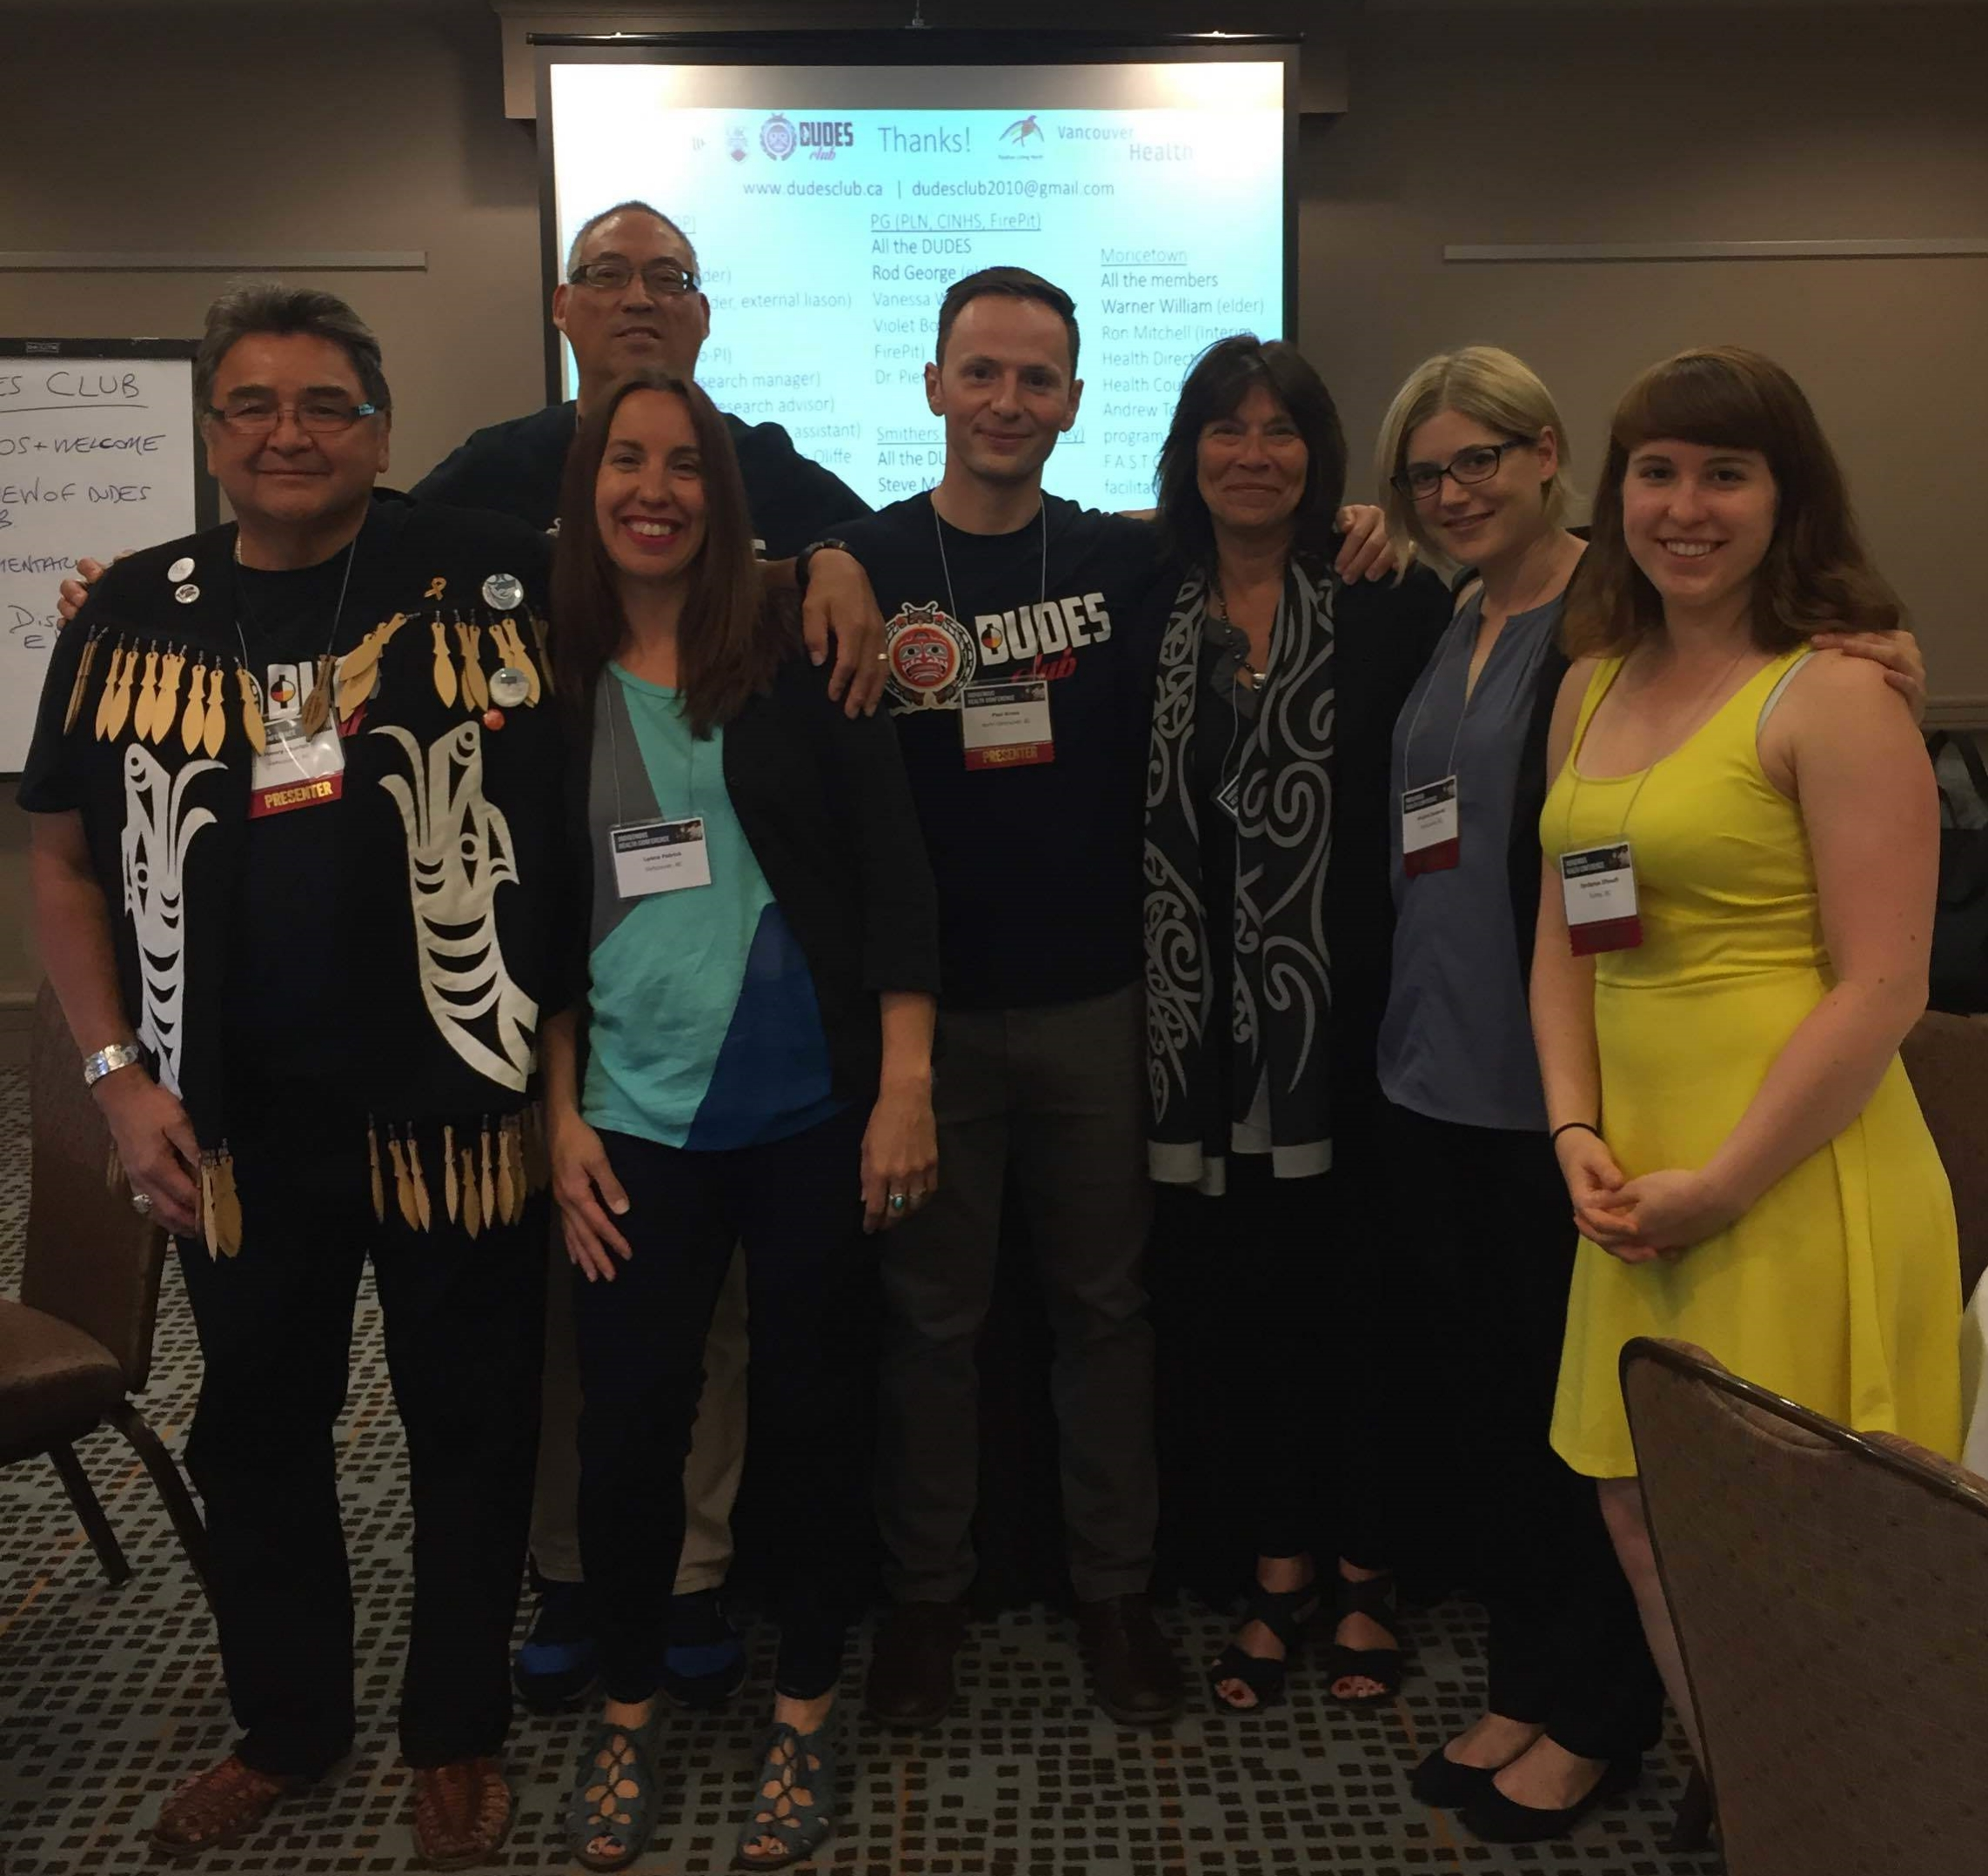 After our workshop at the conference. From left to right - Henry Charles, Sandy Lambert (back), Lyana Patrick (front), Dr. Paul Gross, Dr. Vicki Smye, Viviane Josewski, and Iloradanon Efimoff